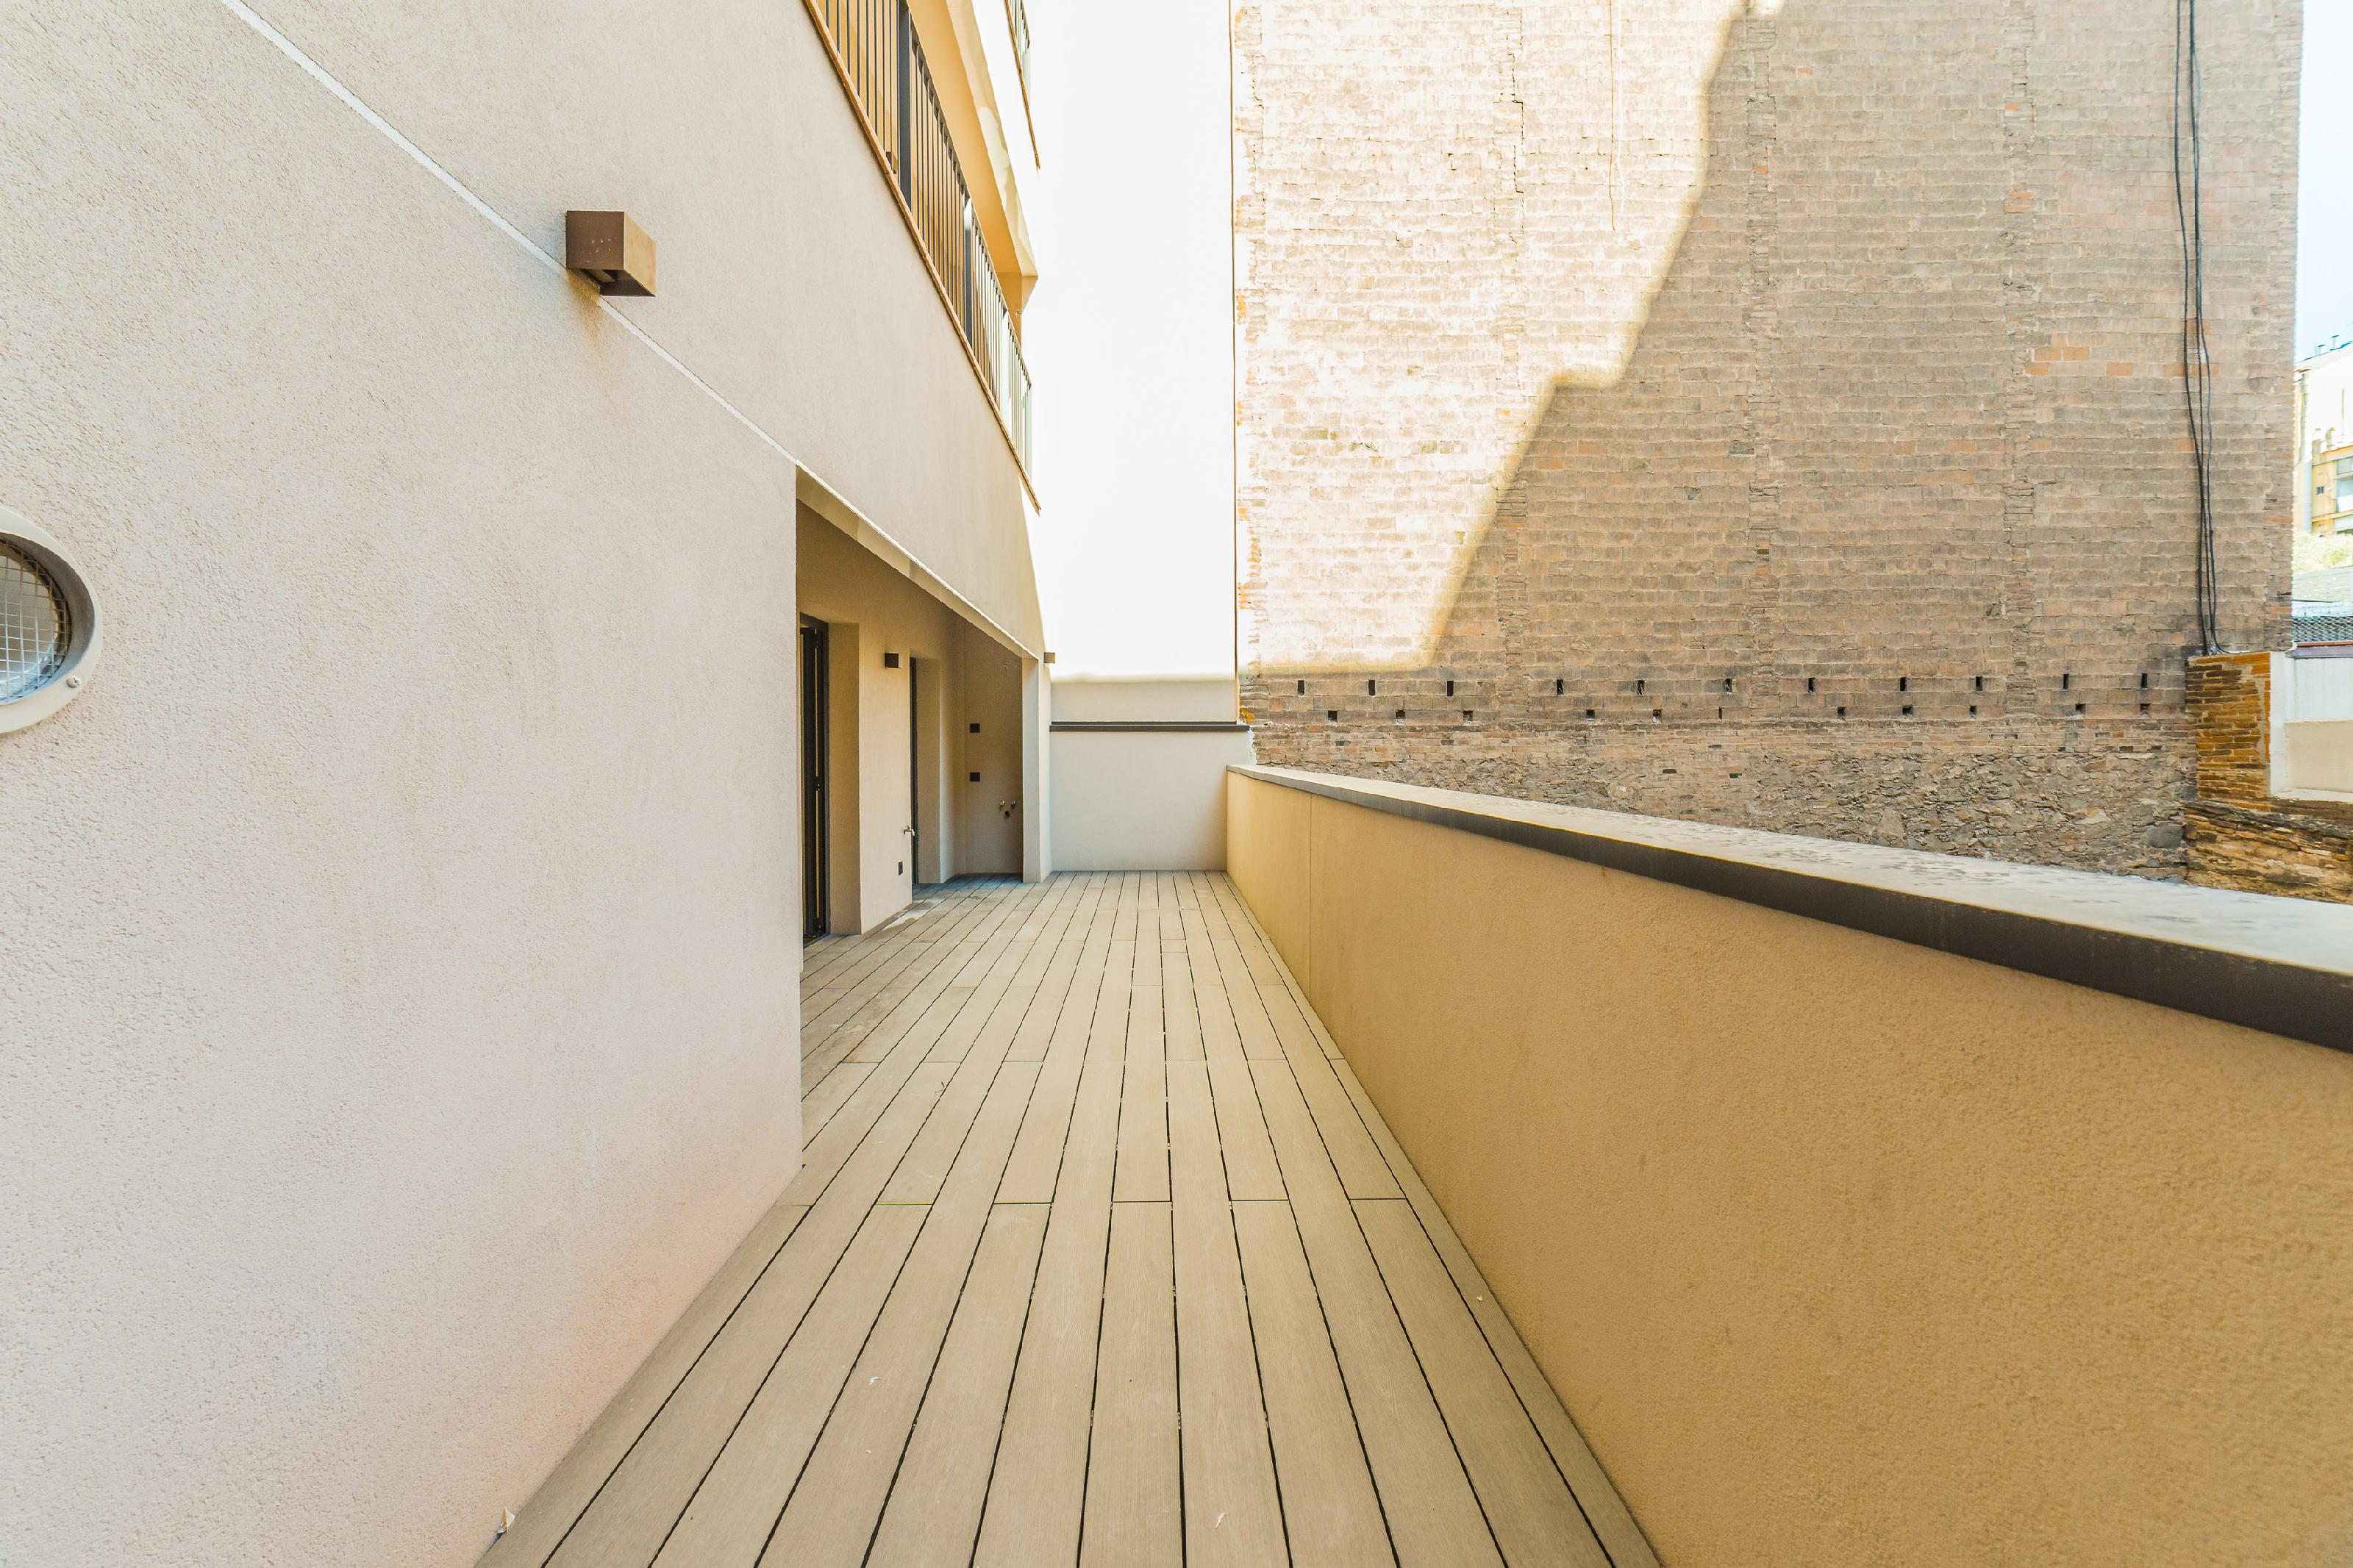 182176 Apartment for sale in Eixample, Old Left Eixample 28